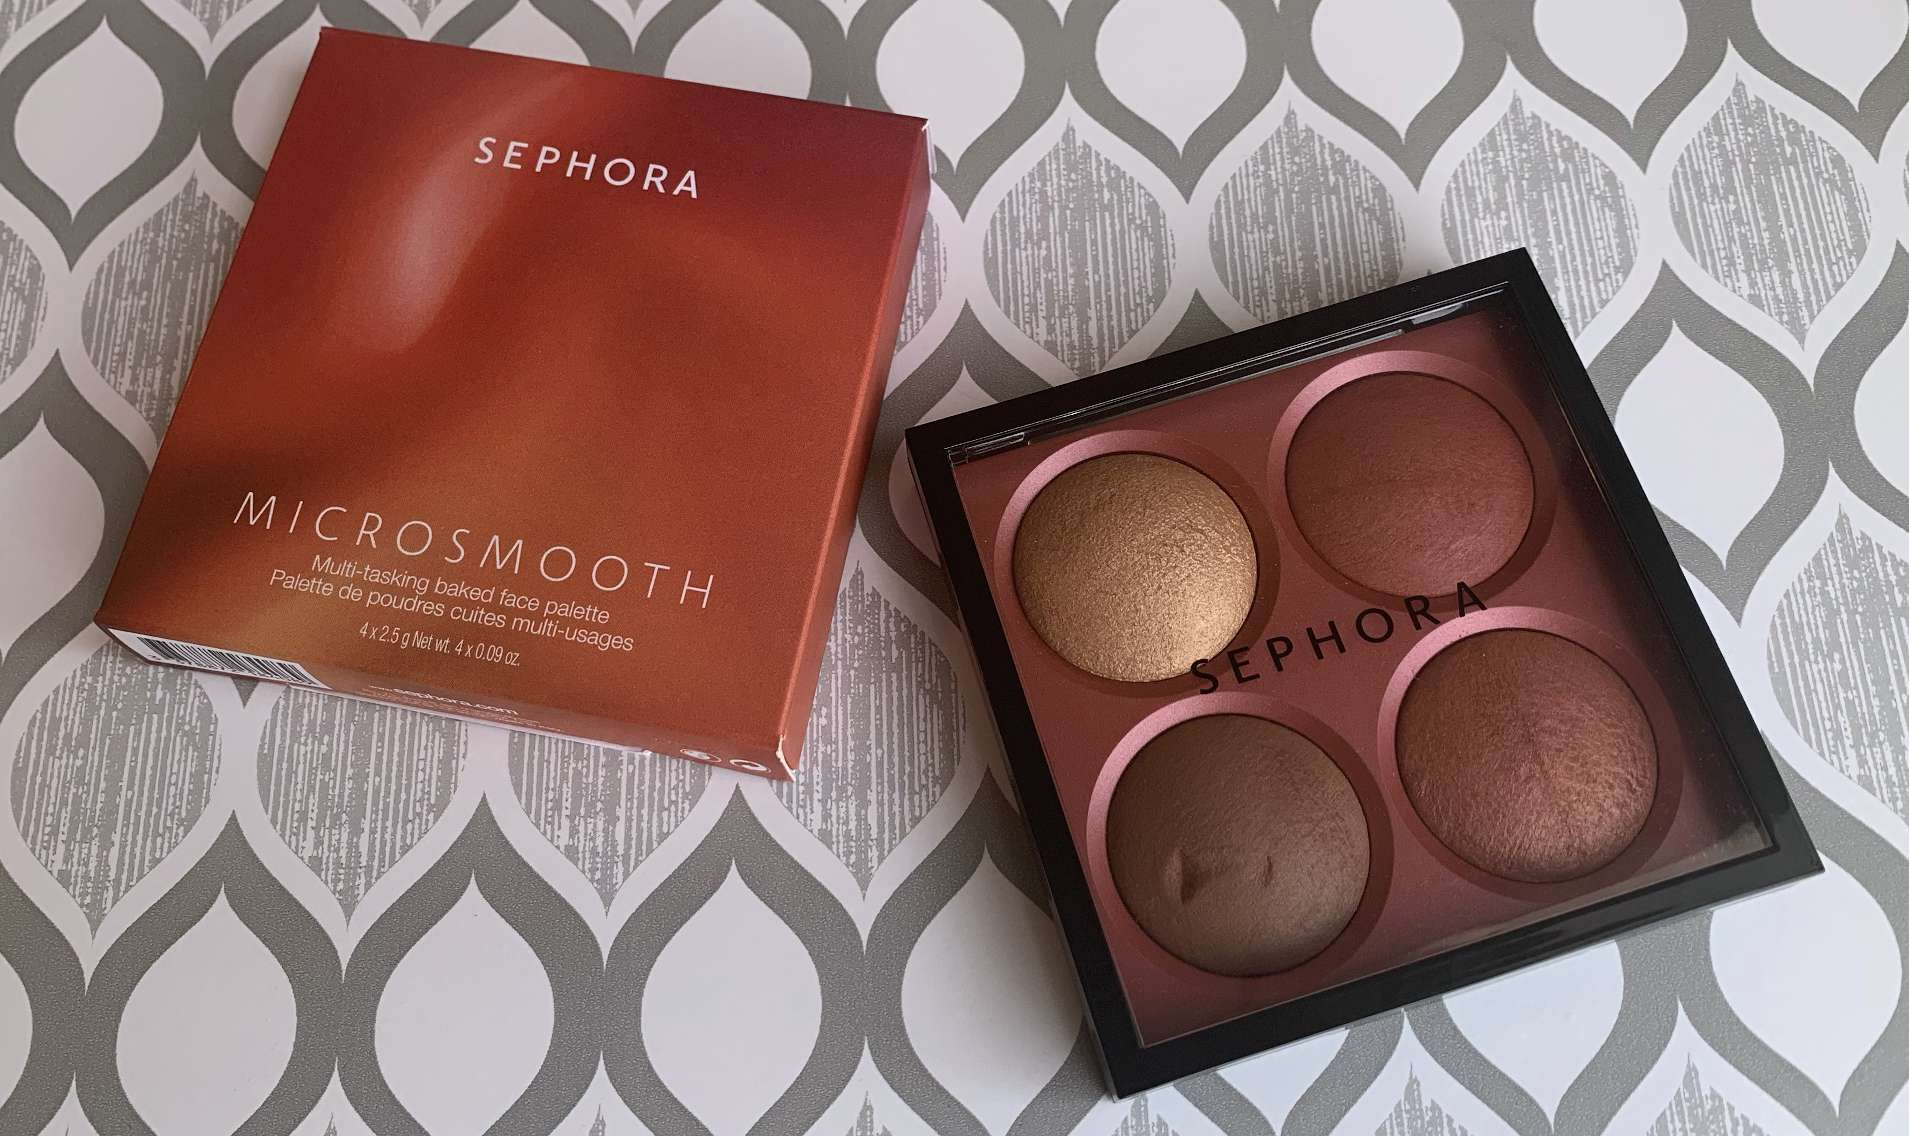 Sephora Microsmooth Multi-tasking Baked Face Palette in Captivate Swatches